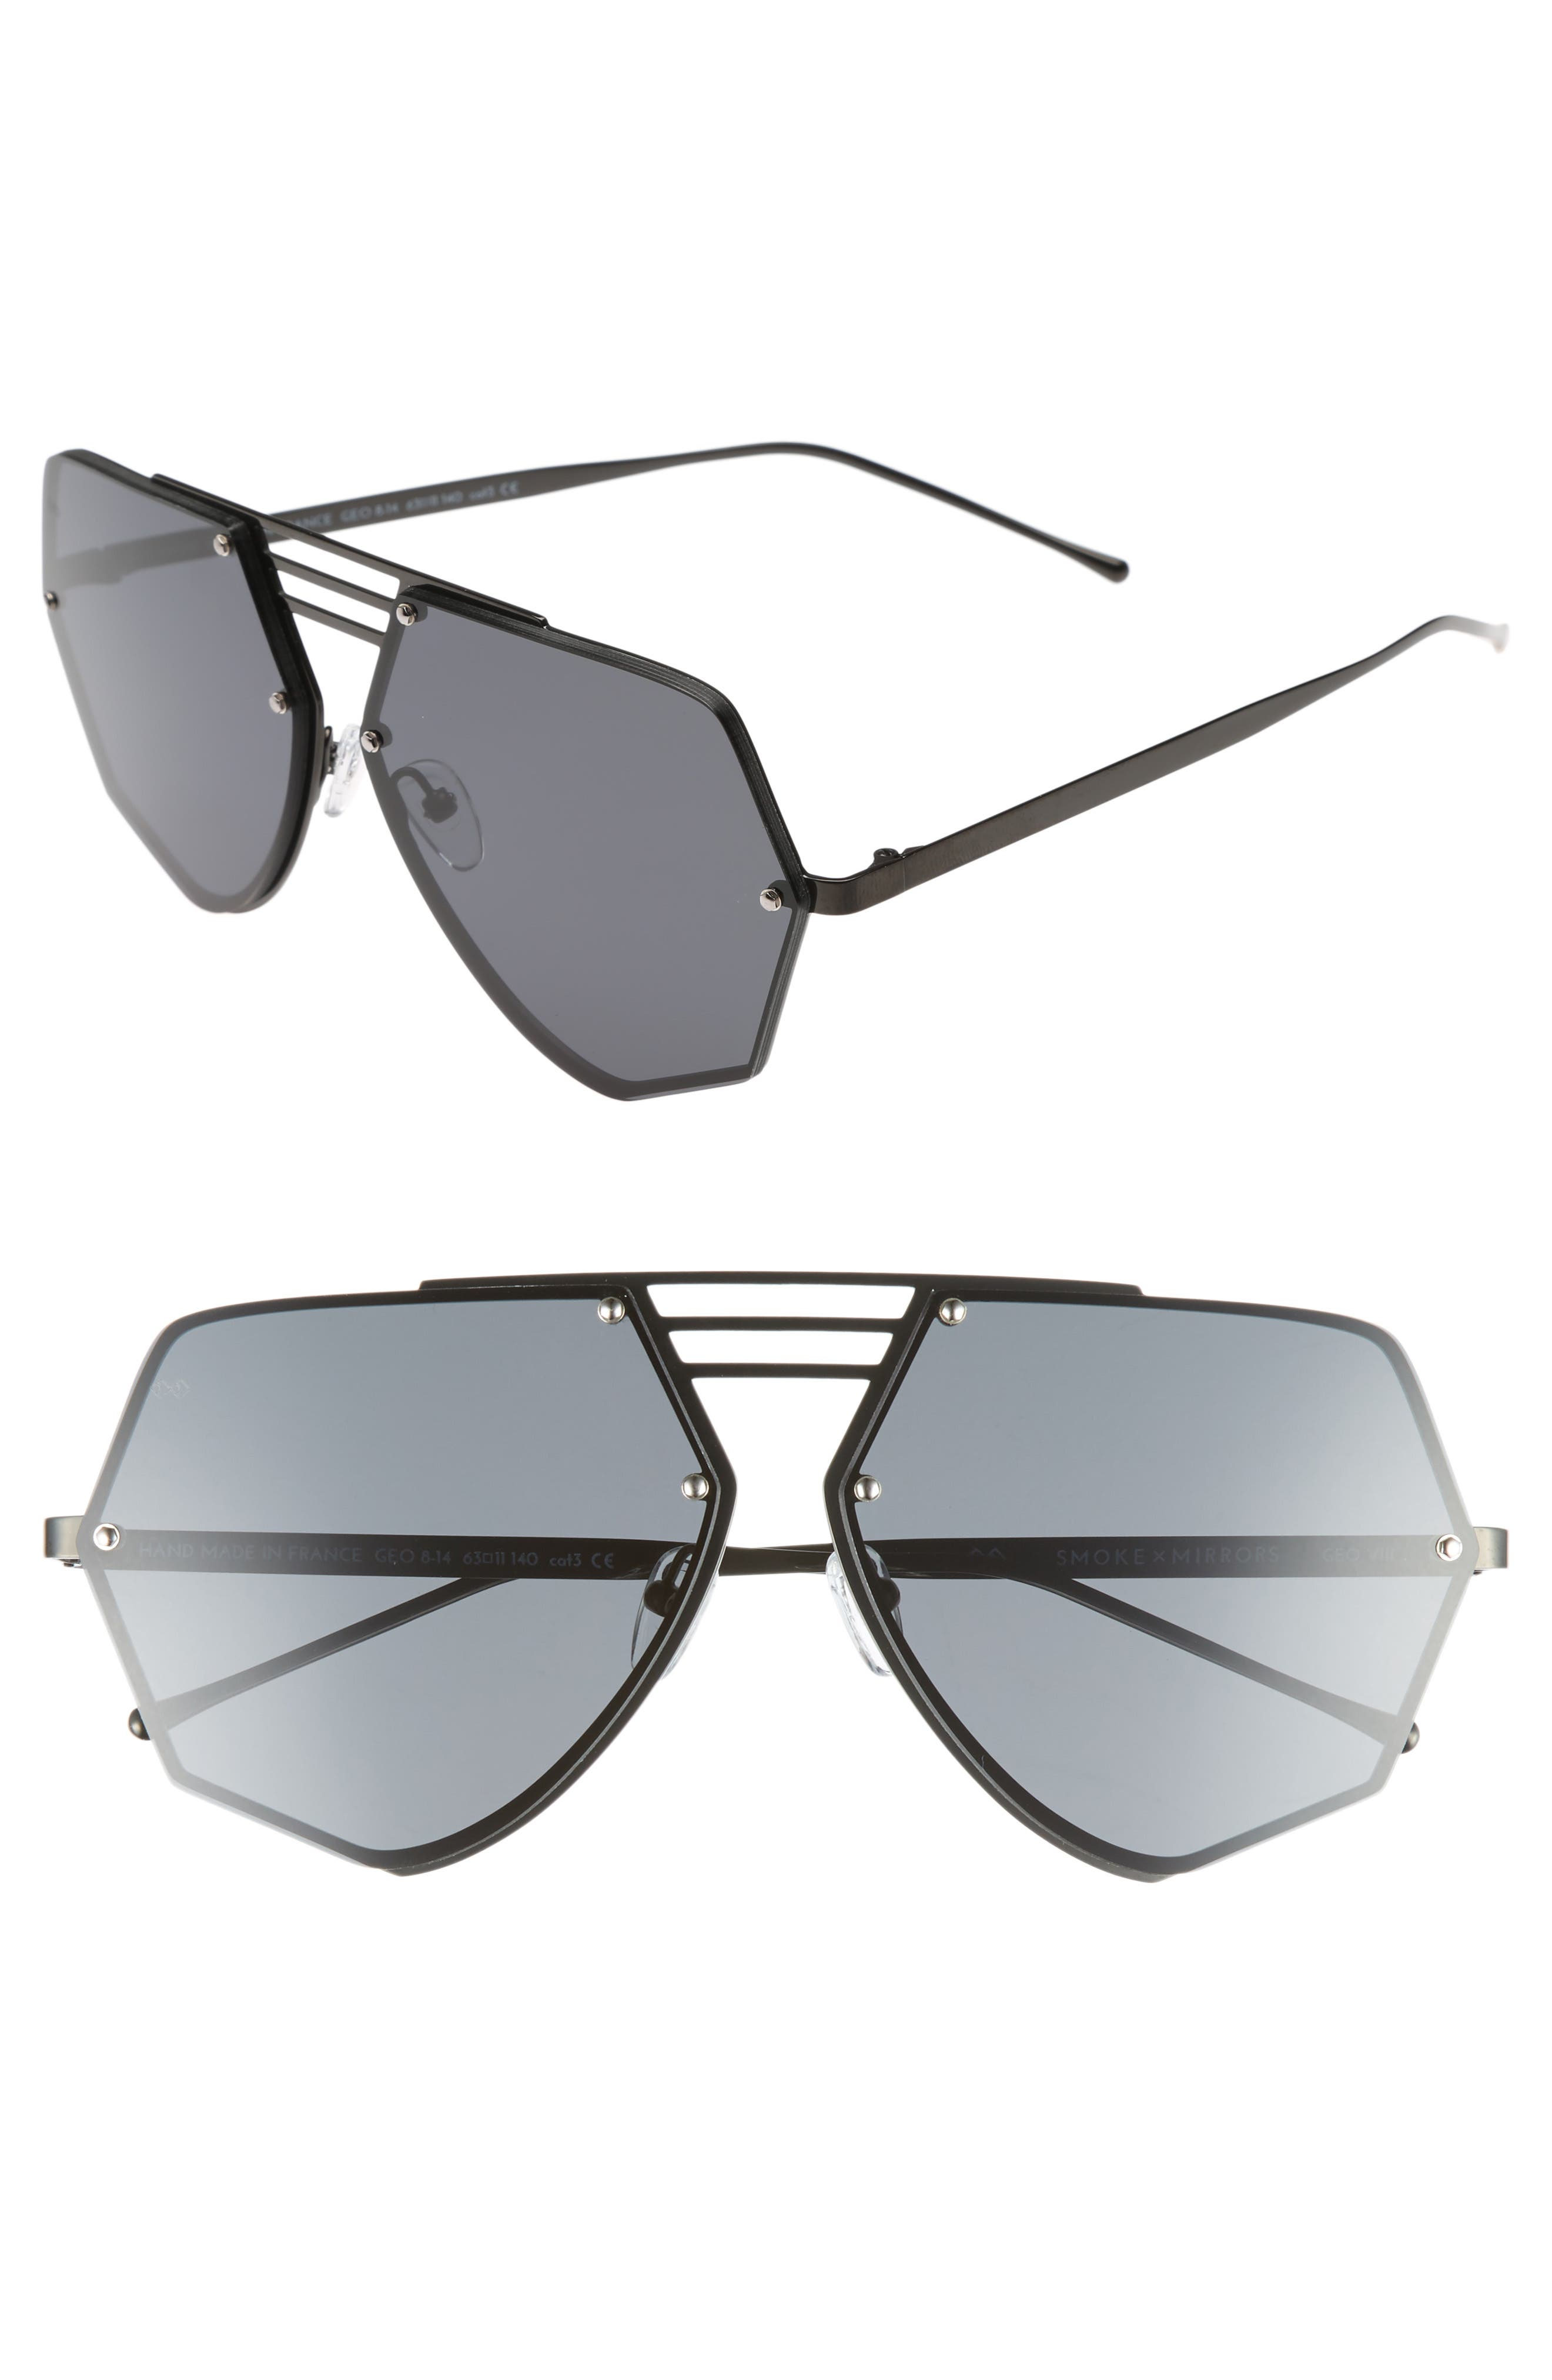 Geo VIII 63mm Sunglasses,                             Main thumbnail 1, color,                             DARK GUNMETAL/ DARK GREY